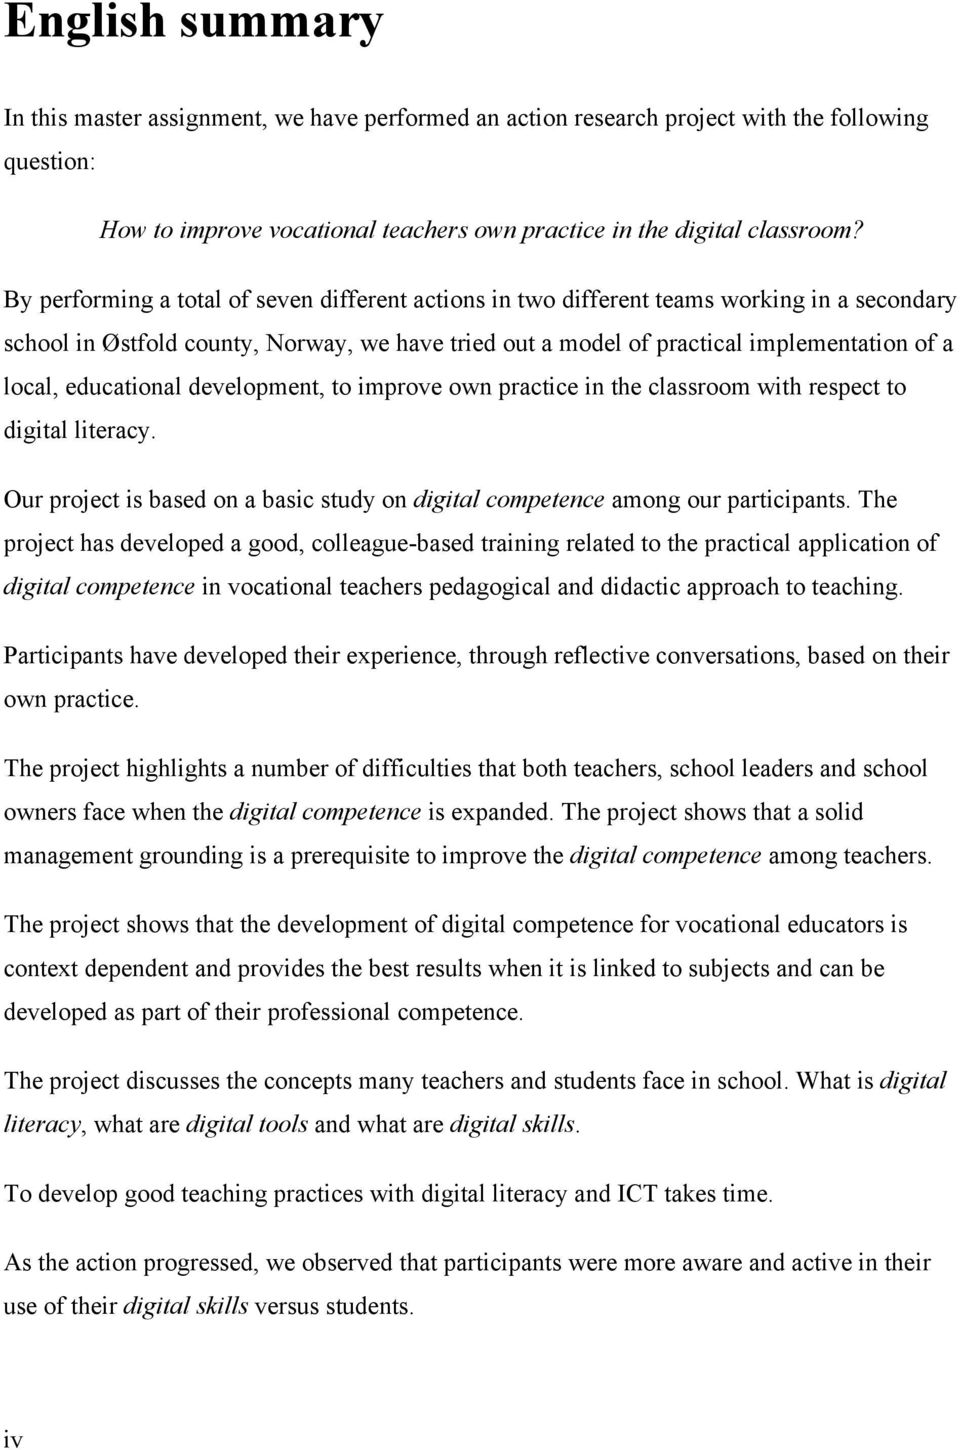 educational development, to improve own practice in the classroom with respect to digital literacy. Our project is based on a basic study on digital competence among our participants.